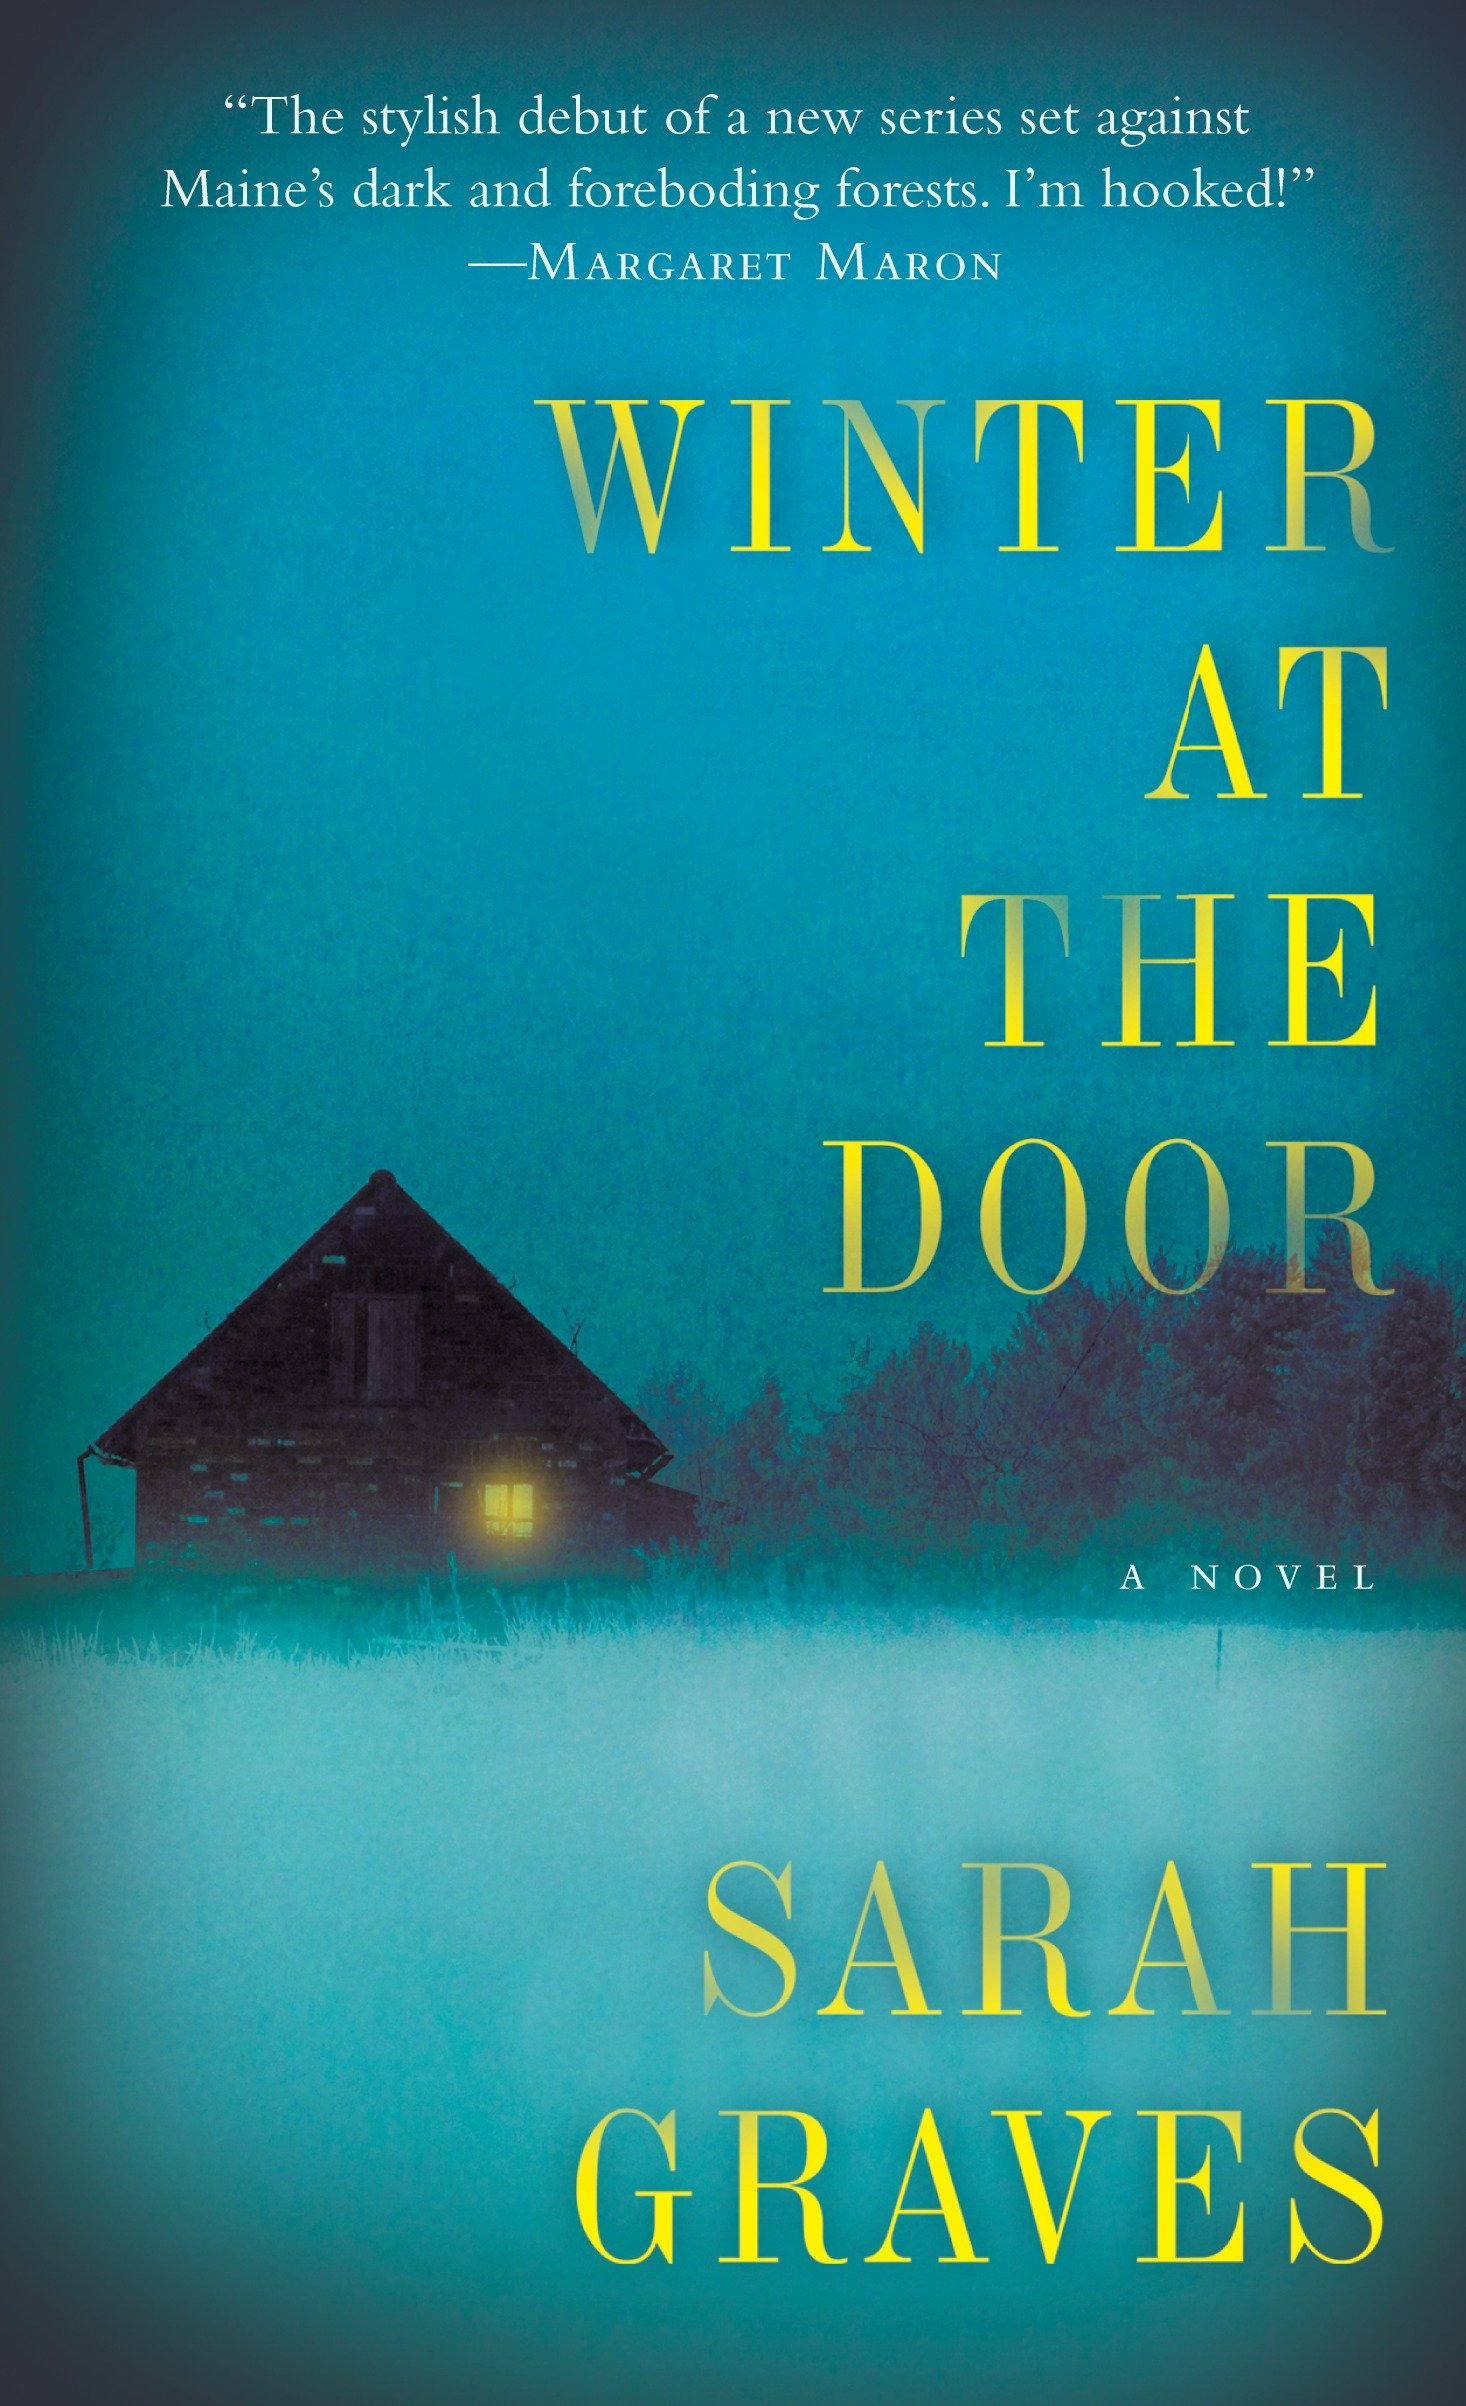 Winter at the door cover image